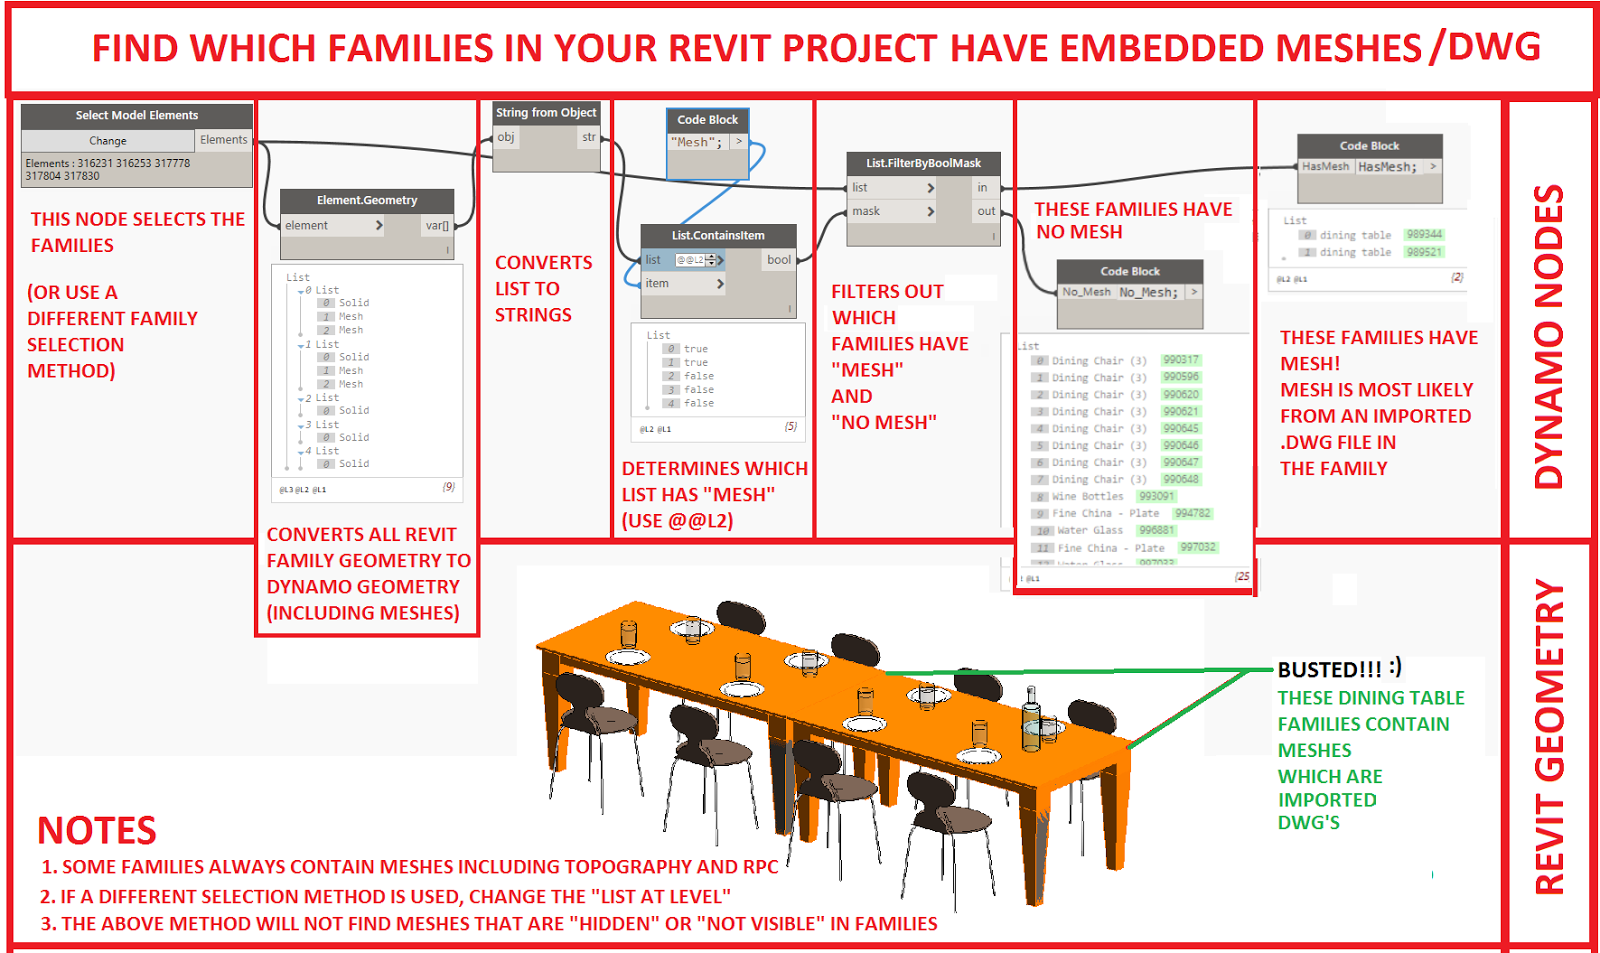 Find the Families in your Revit Project that have Embedded DWG mesh